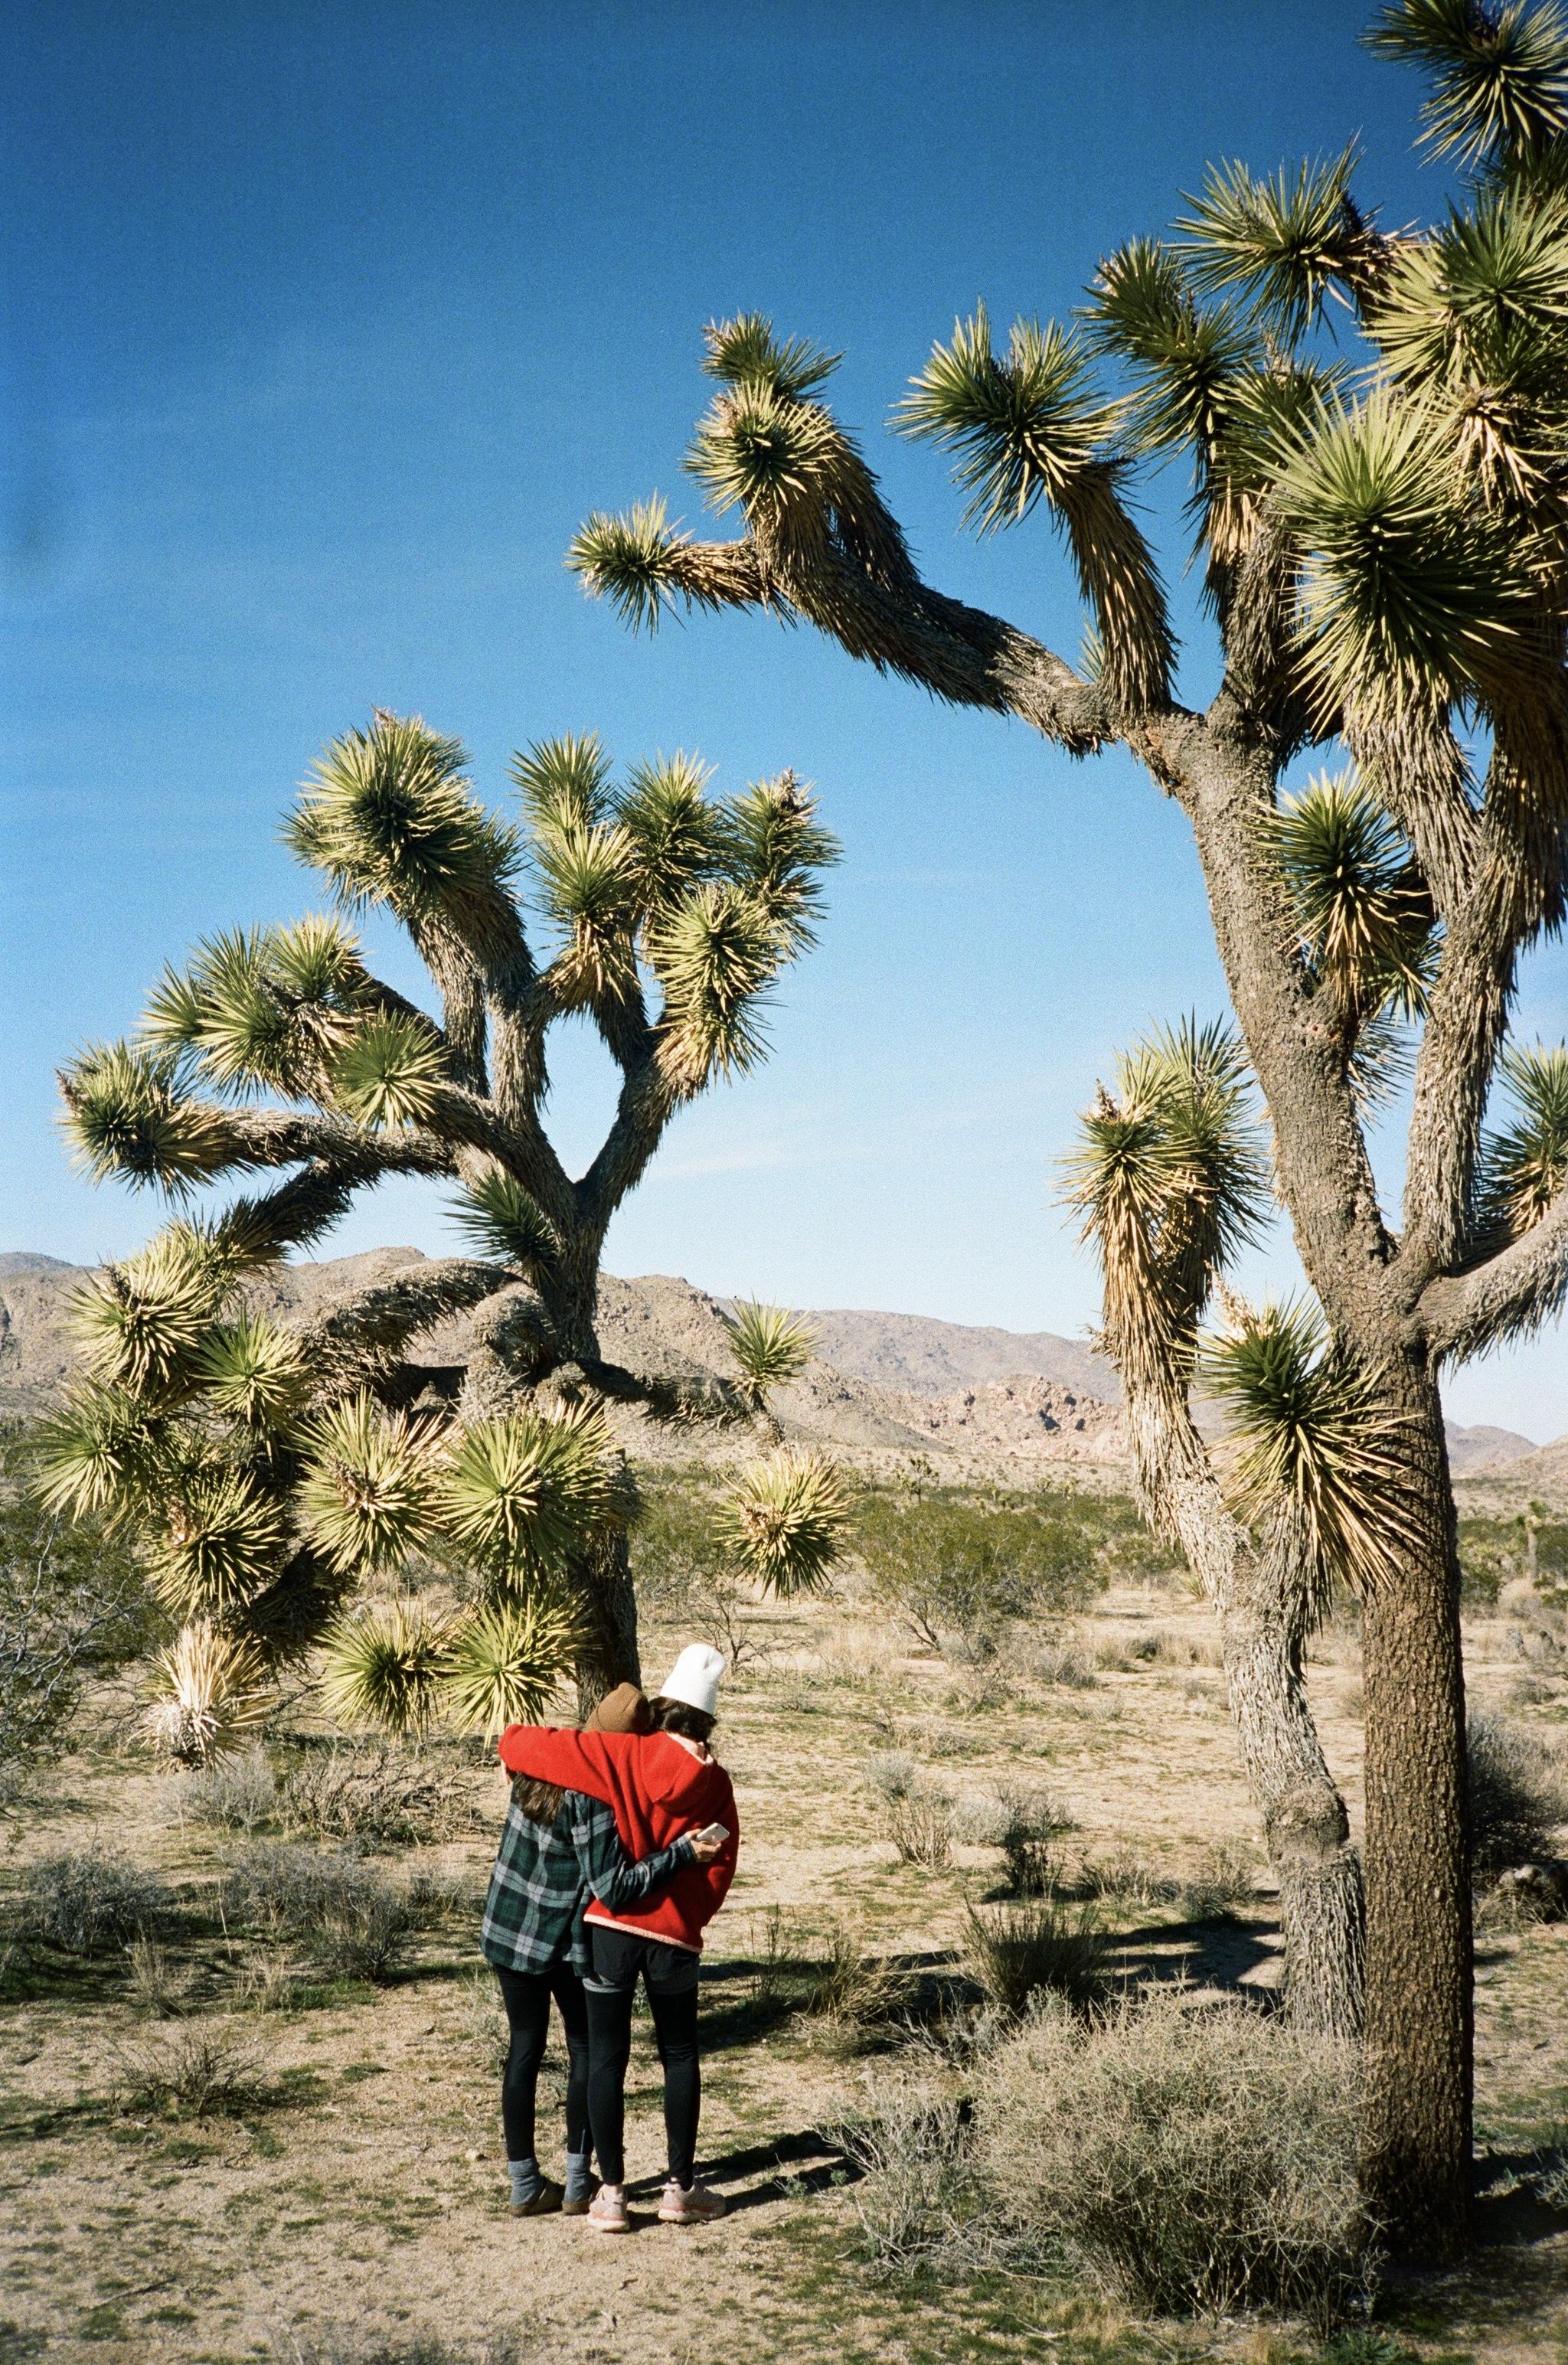 Governmen shutdown, joshua tree national park